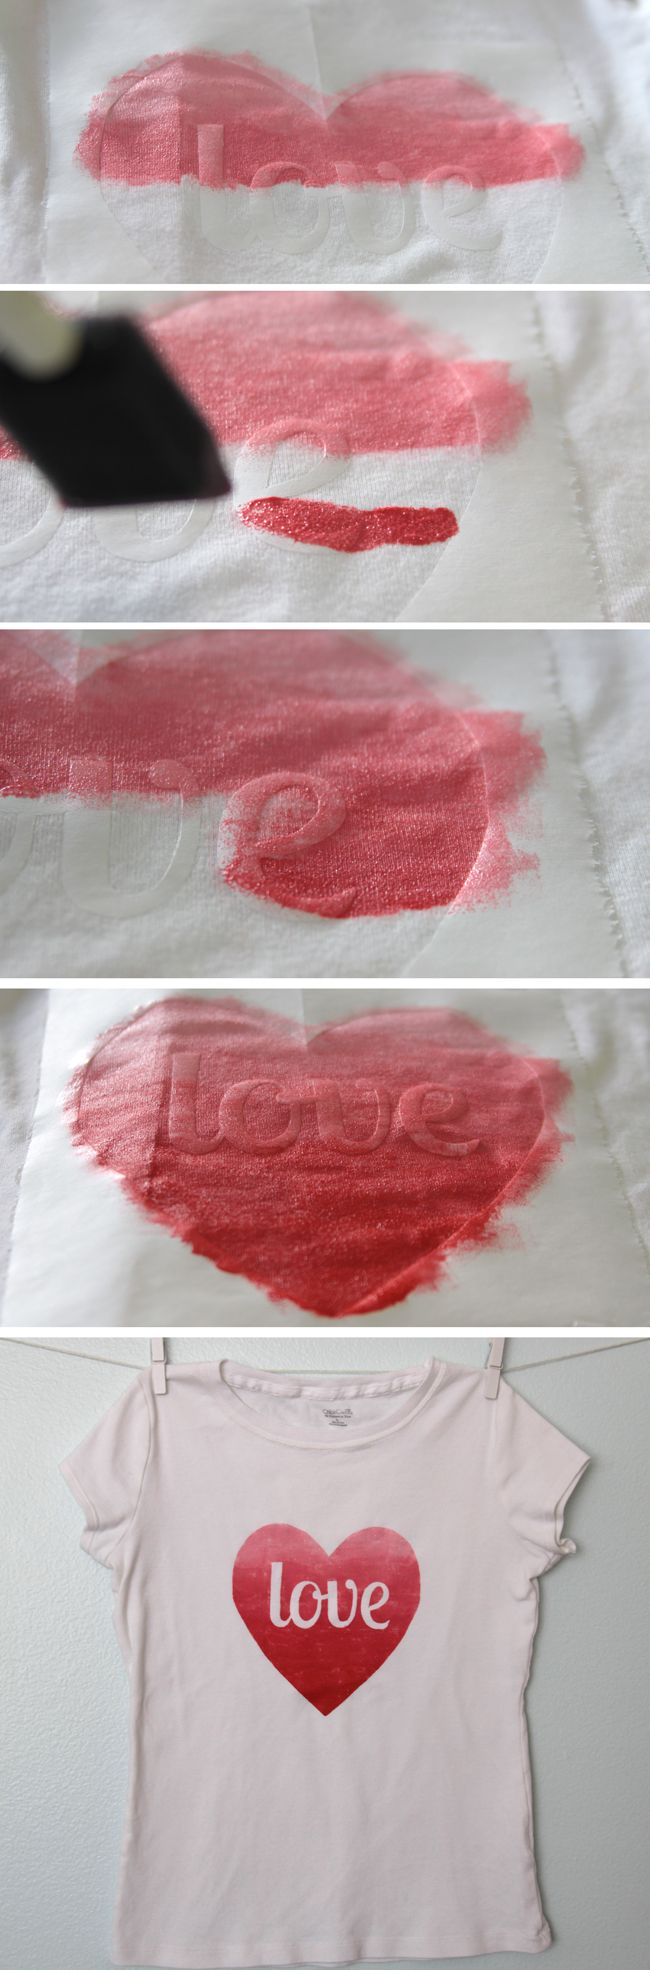 it's always autumn - itsalwaysautumn - ombre heart tee {freezer paper stencil}